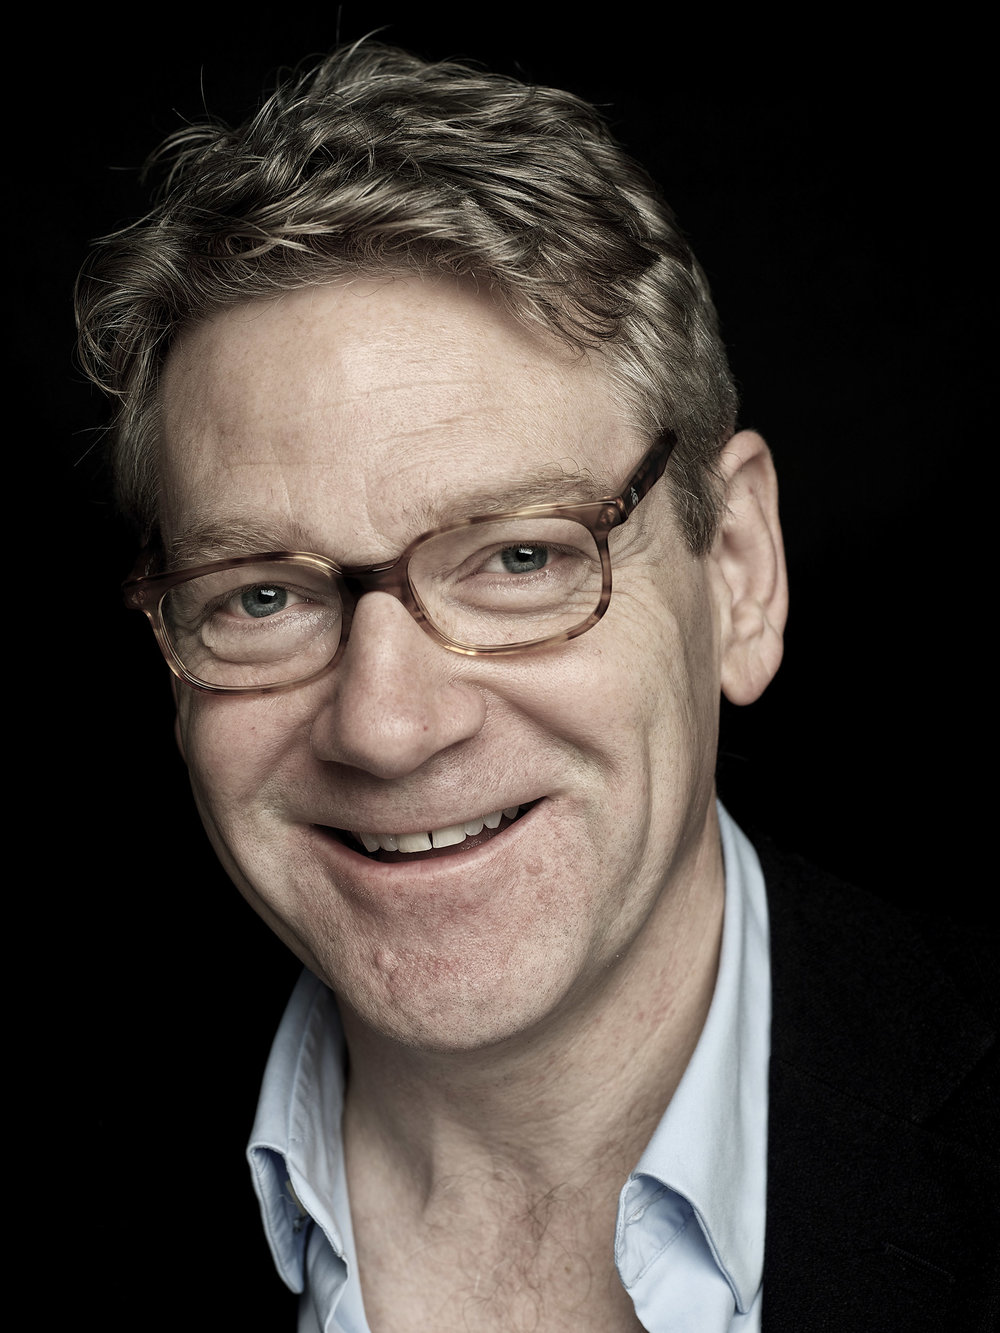 Portraits_Kenneth_Branagh_Bolger_Photography_5.jpg